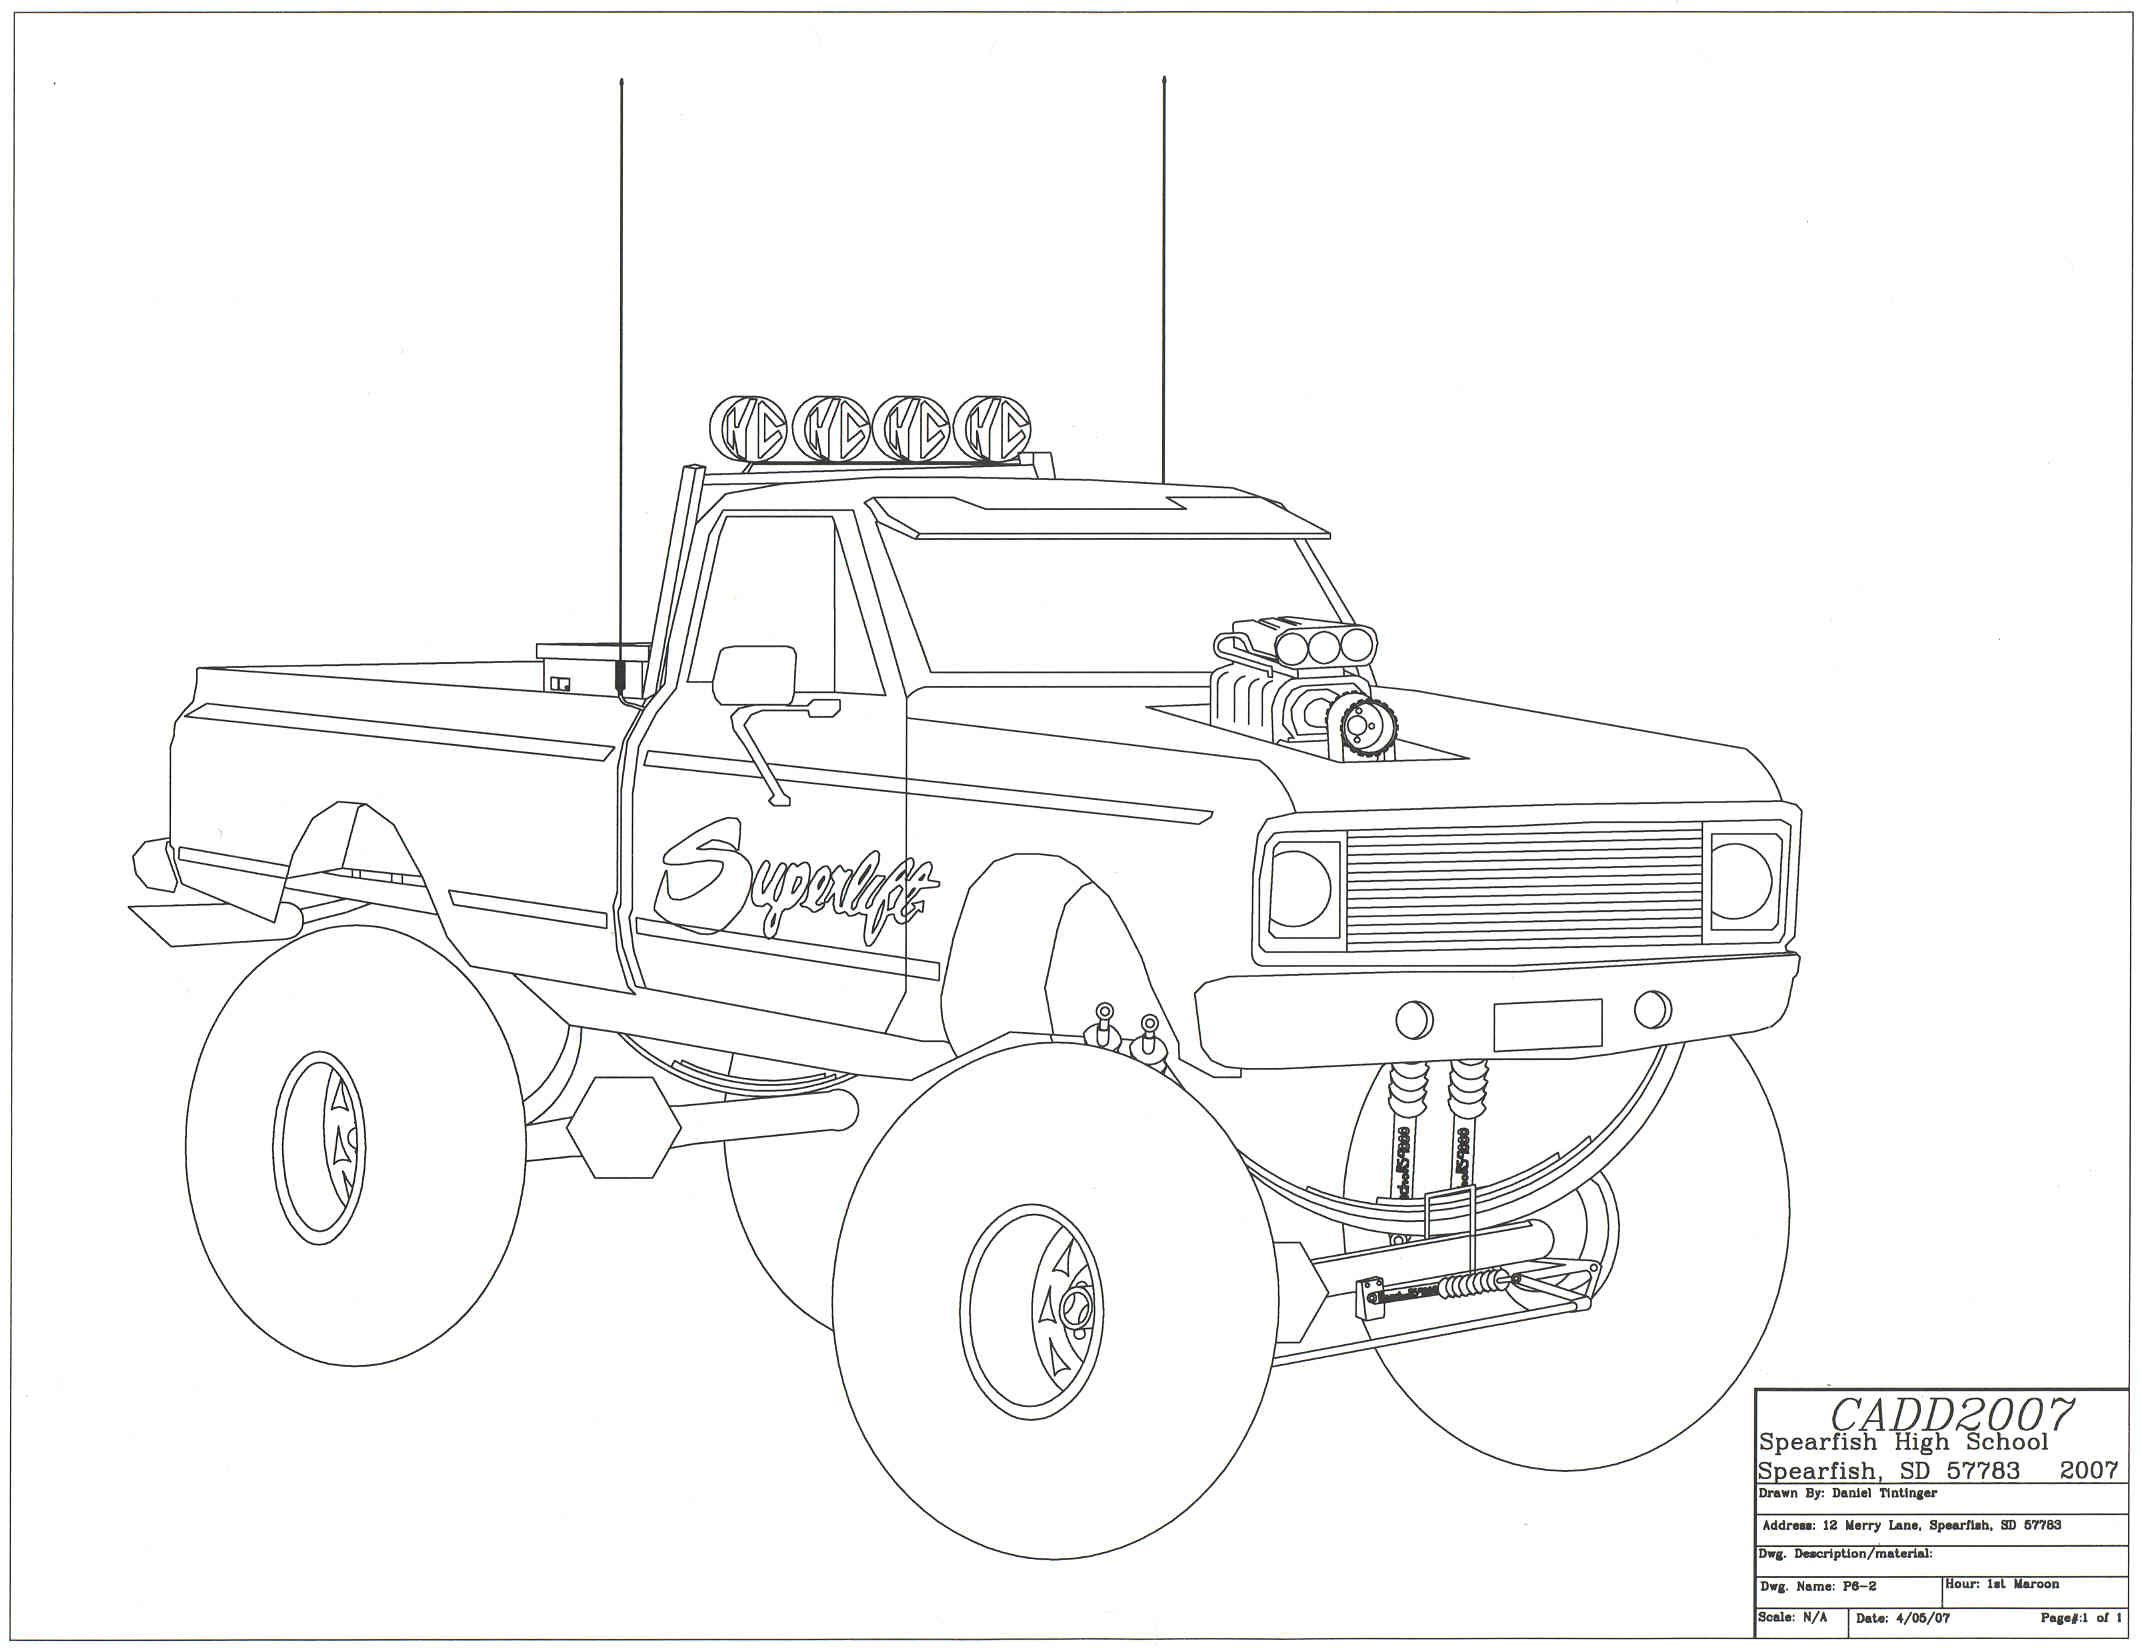 1981 chevy pickup truck drawings car and truck drawings are a Chevy 2 Ton 1981 chevy pickup truck drawings car and truck drawings are a popular activity in mrs mccoy s puter